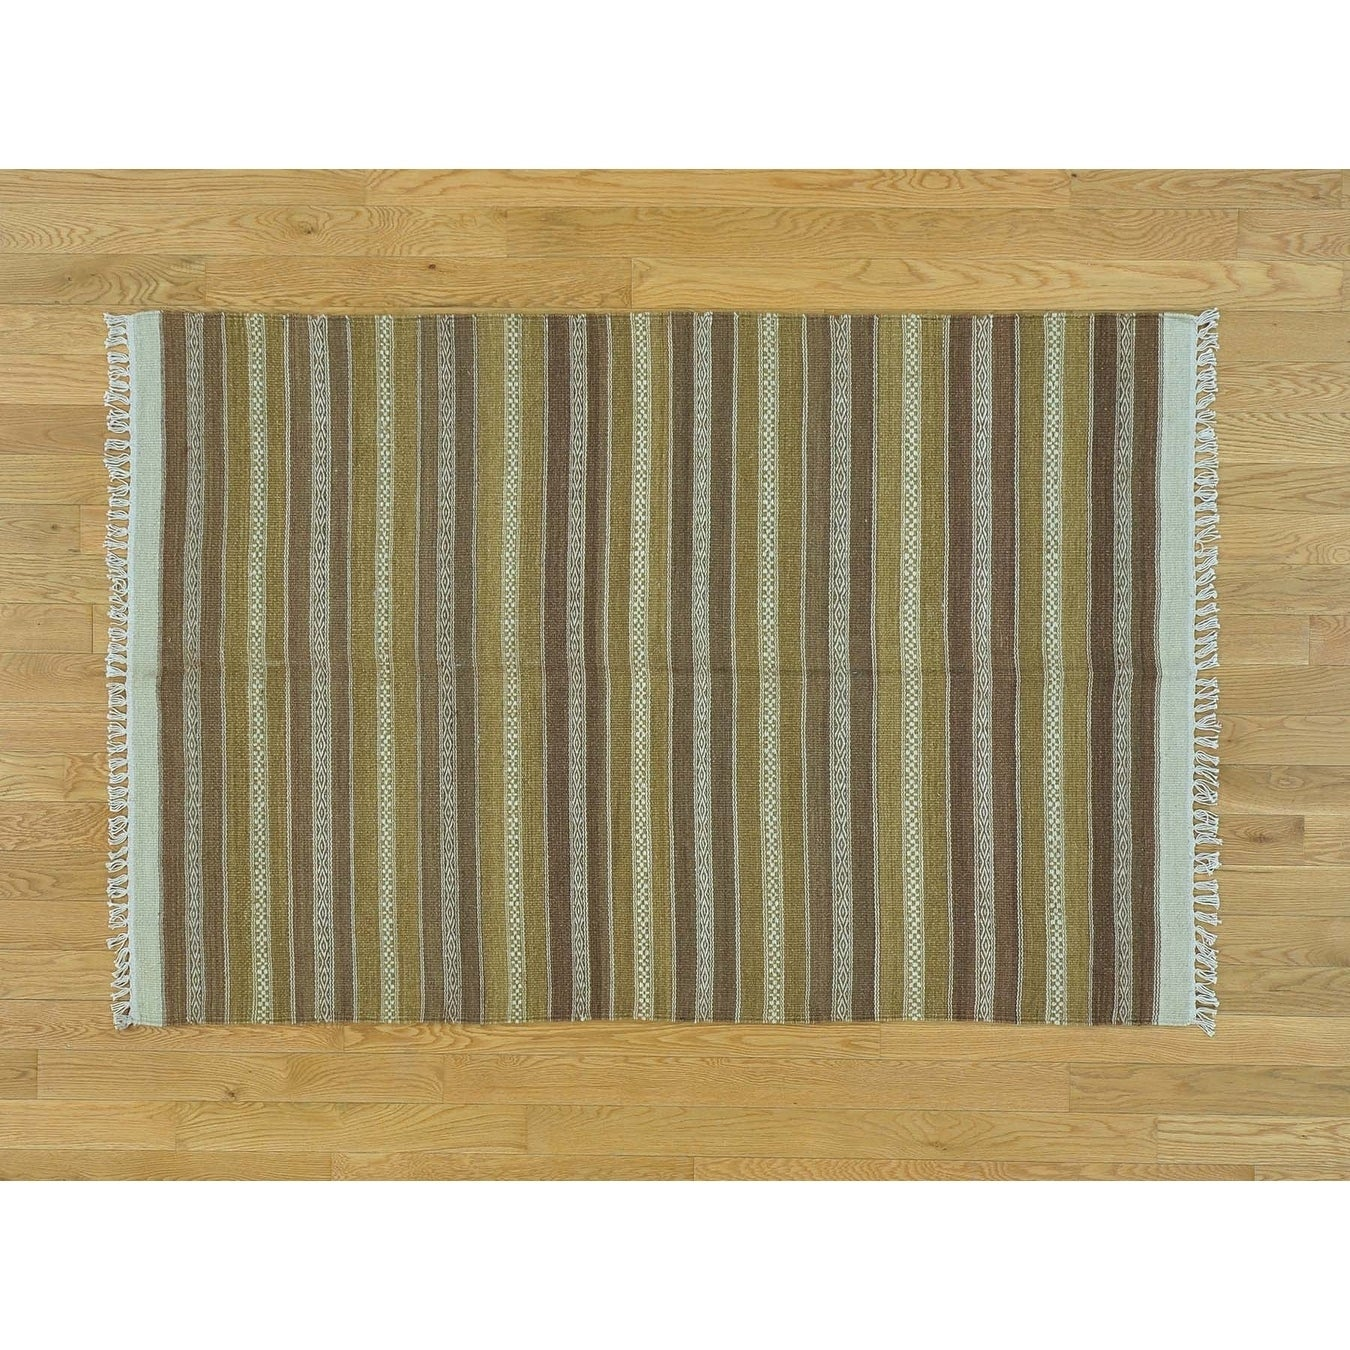 Hand Knotted Multicolored Flat Weave with Wool Oriental Rug - 310 x 510